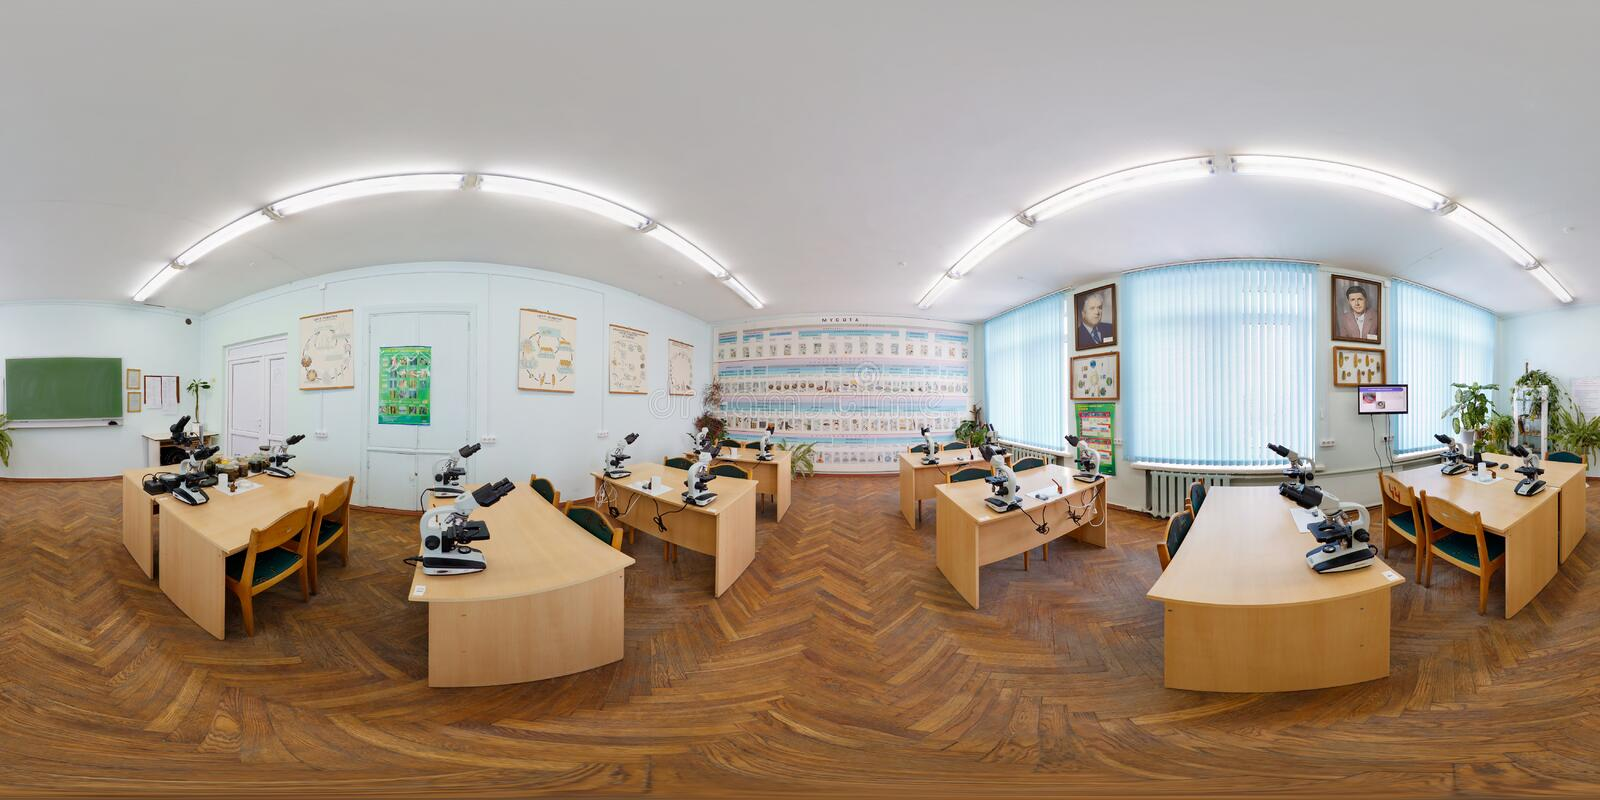 GRODNO, BELARUS - FEBRUARY 18, 2012: full 360 degree seamless panorama in equirectangular spherical equidistant projection. Panorama in interior of Training royalty free stock photography